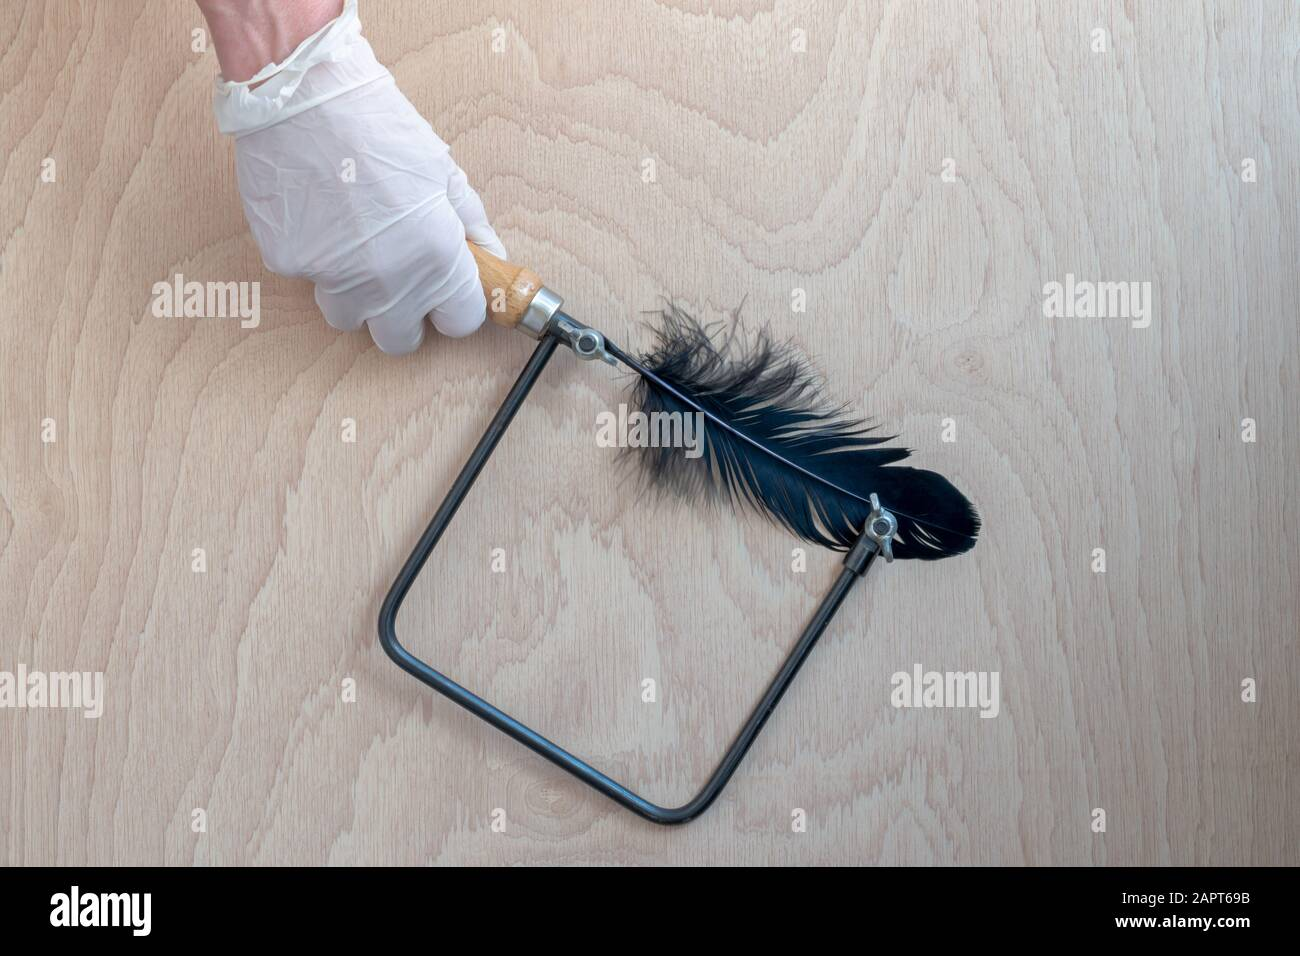 Non violent abuse. Hand with glove holding a hand saw that has a black feather by saw. Stock Photo